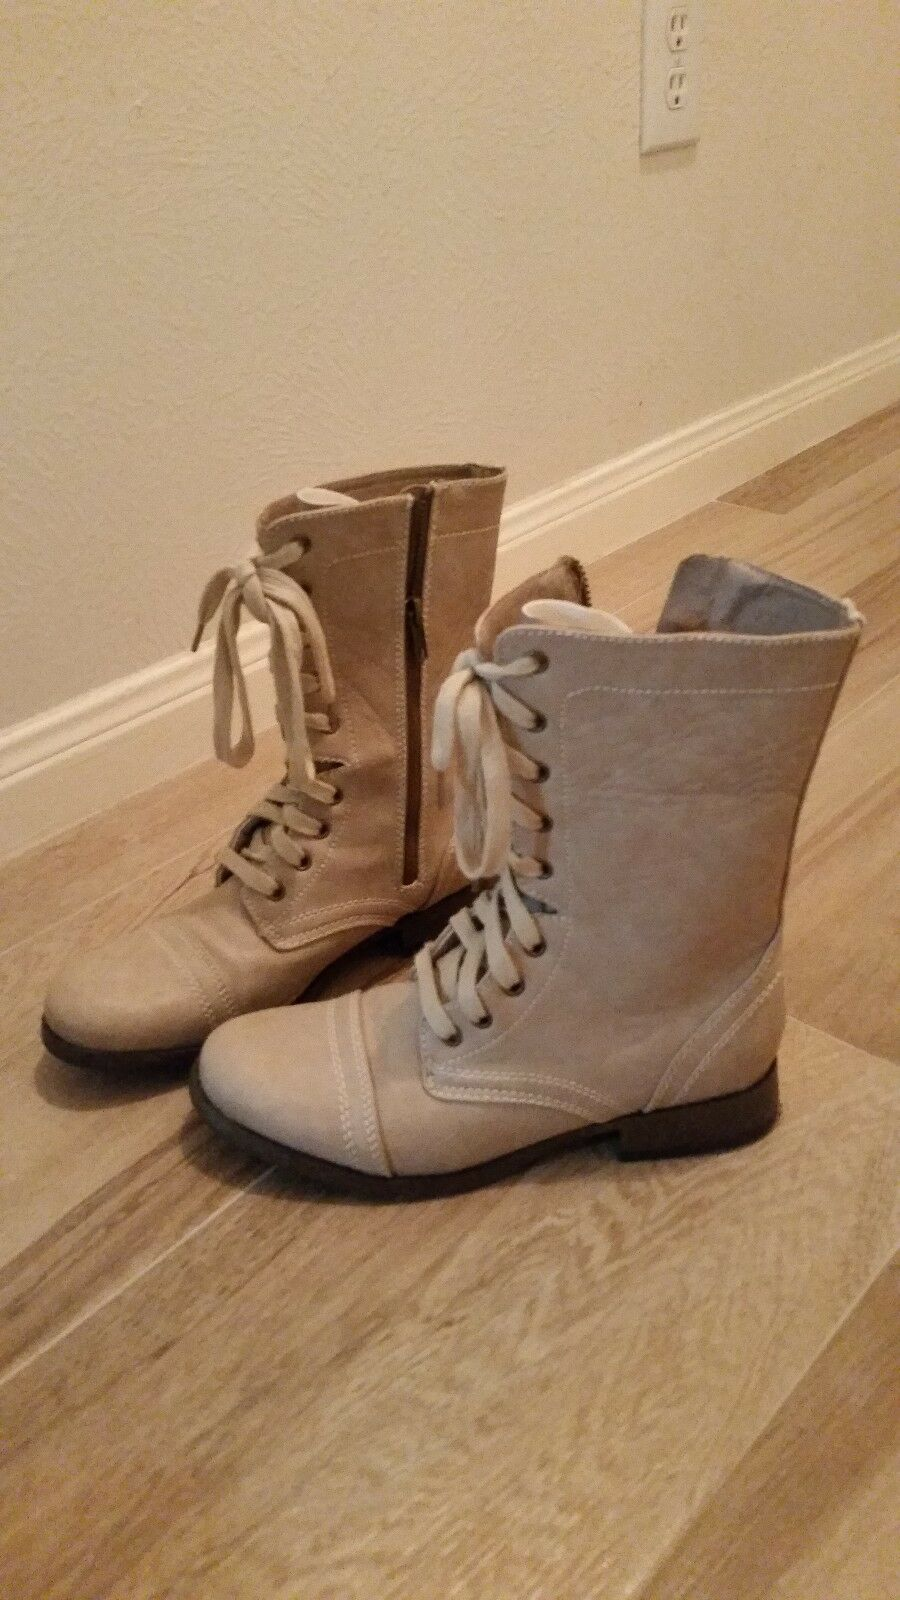 American Eagle Lace Up Cream Combat Moto Boot -Size 7 - Worn once